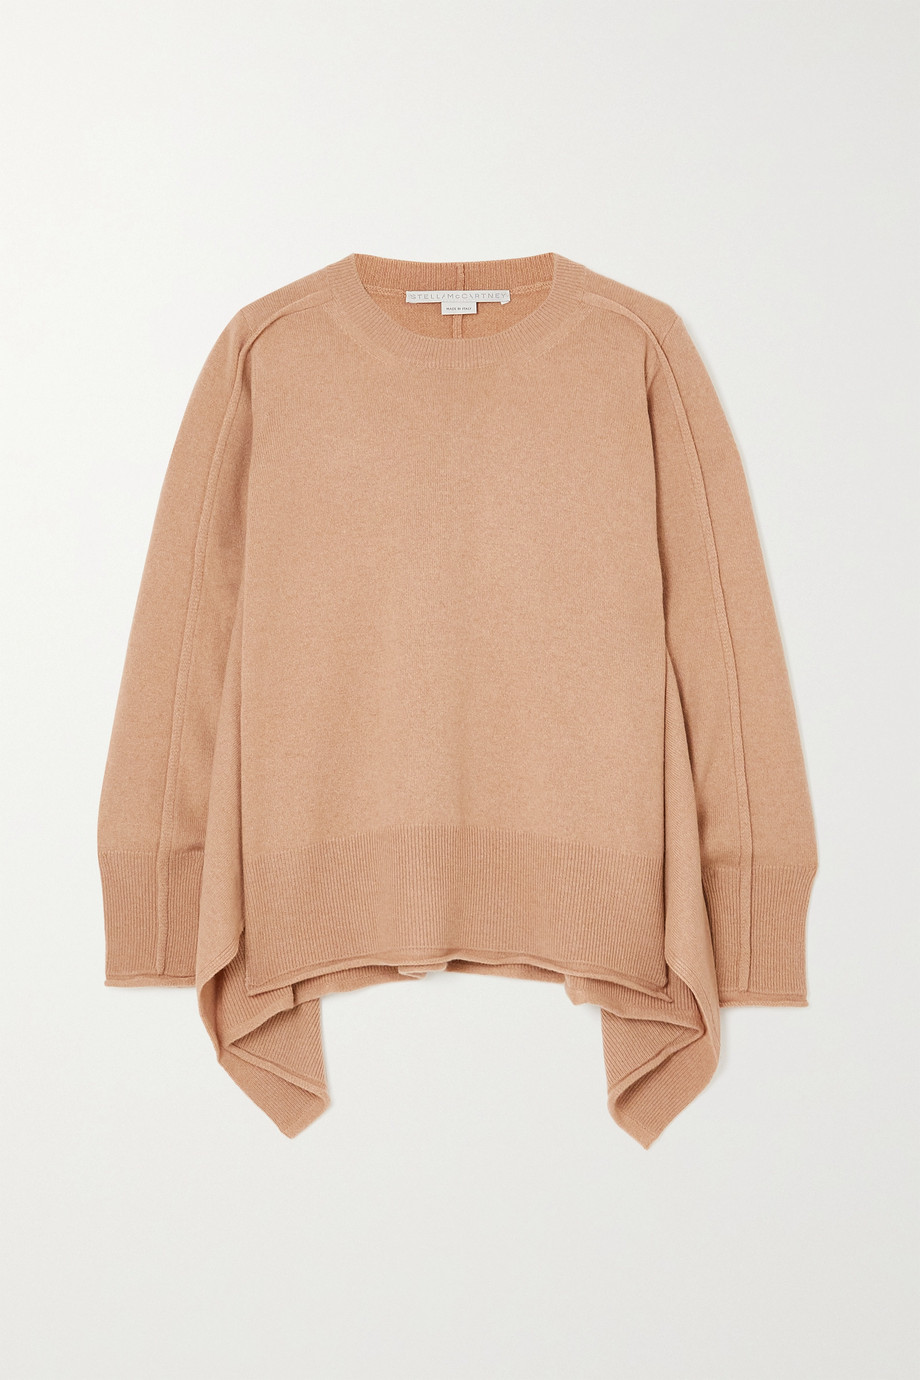 STELLA MCCARTNEY + NET SUSTAIN cashmere and wool-blend sweater